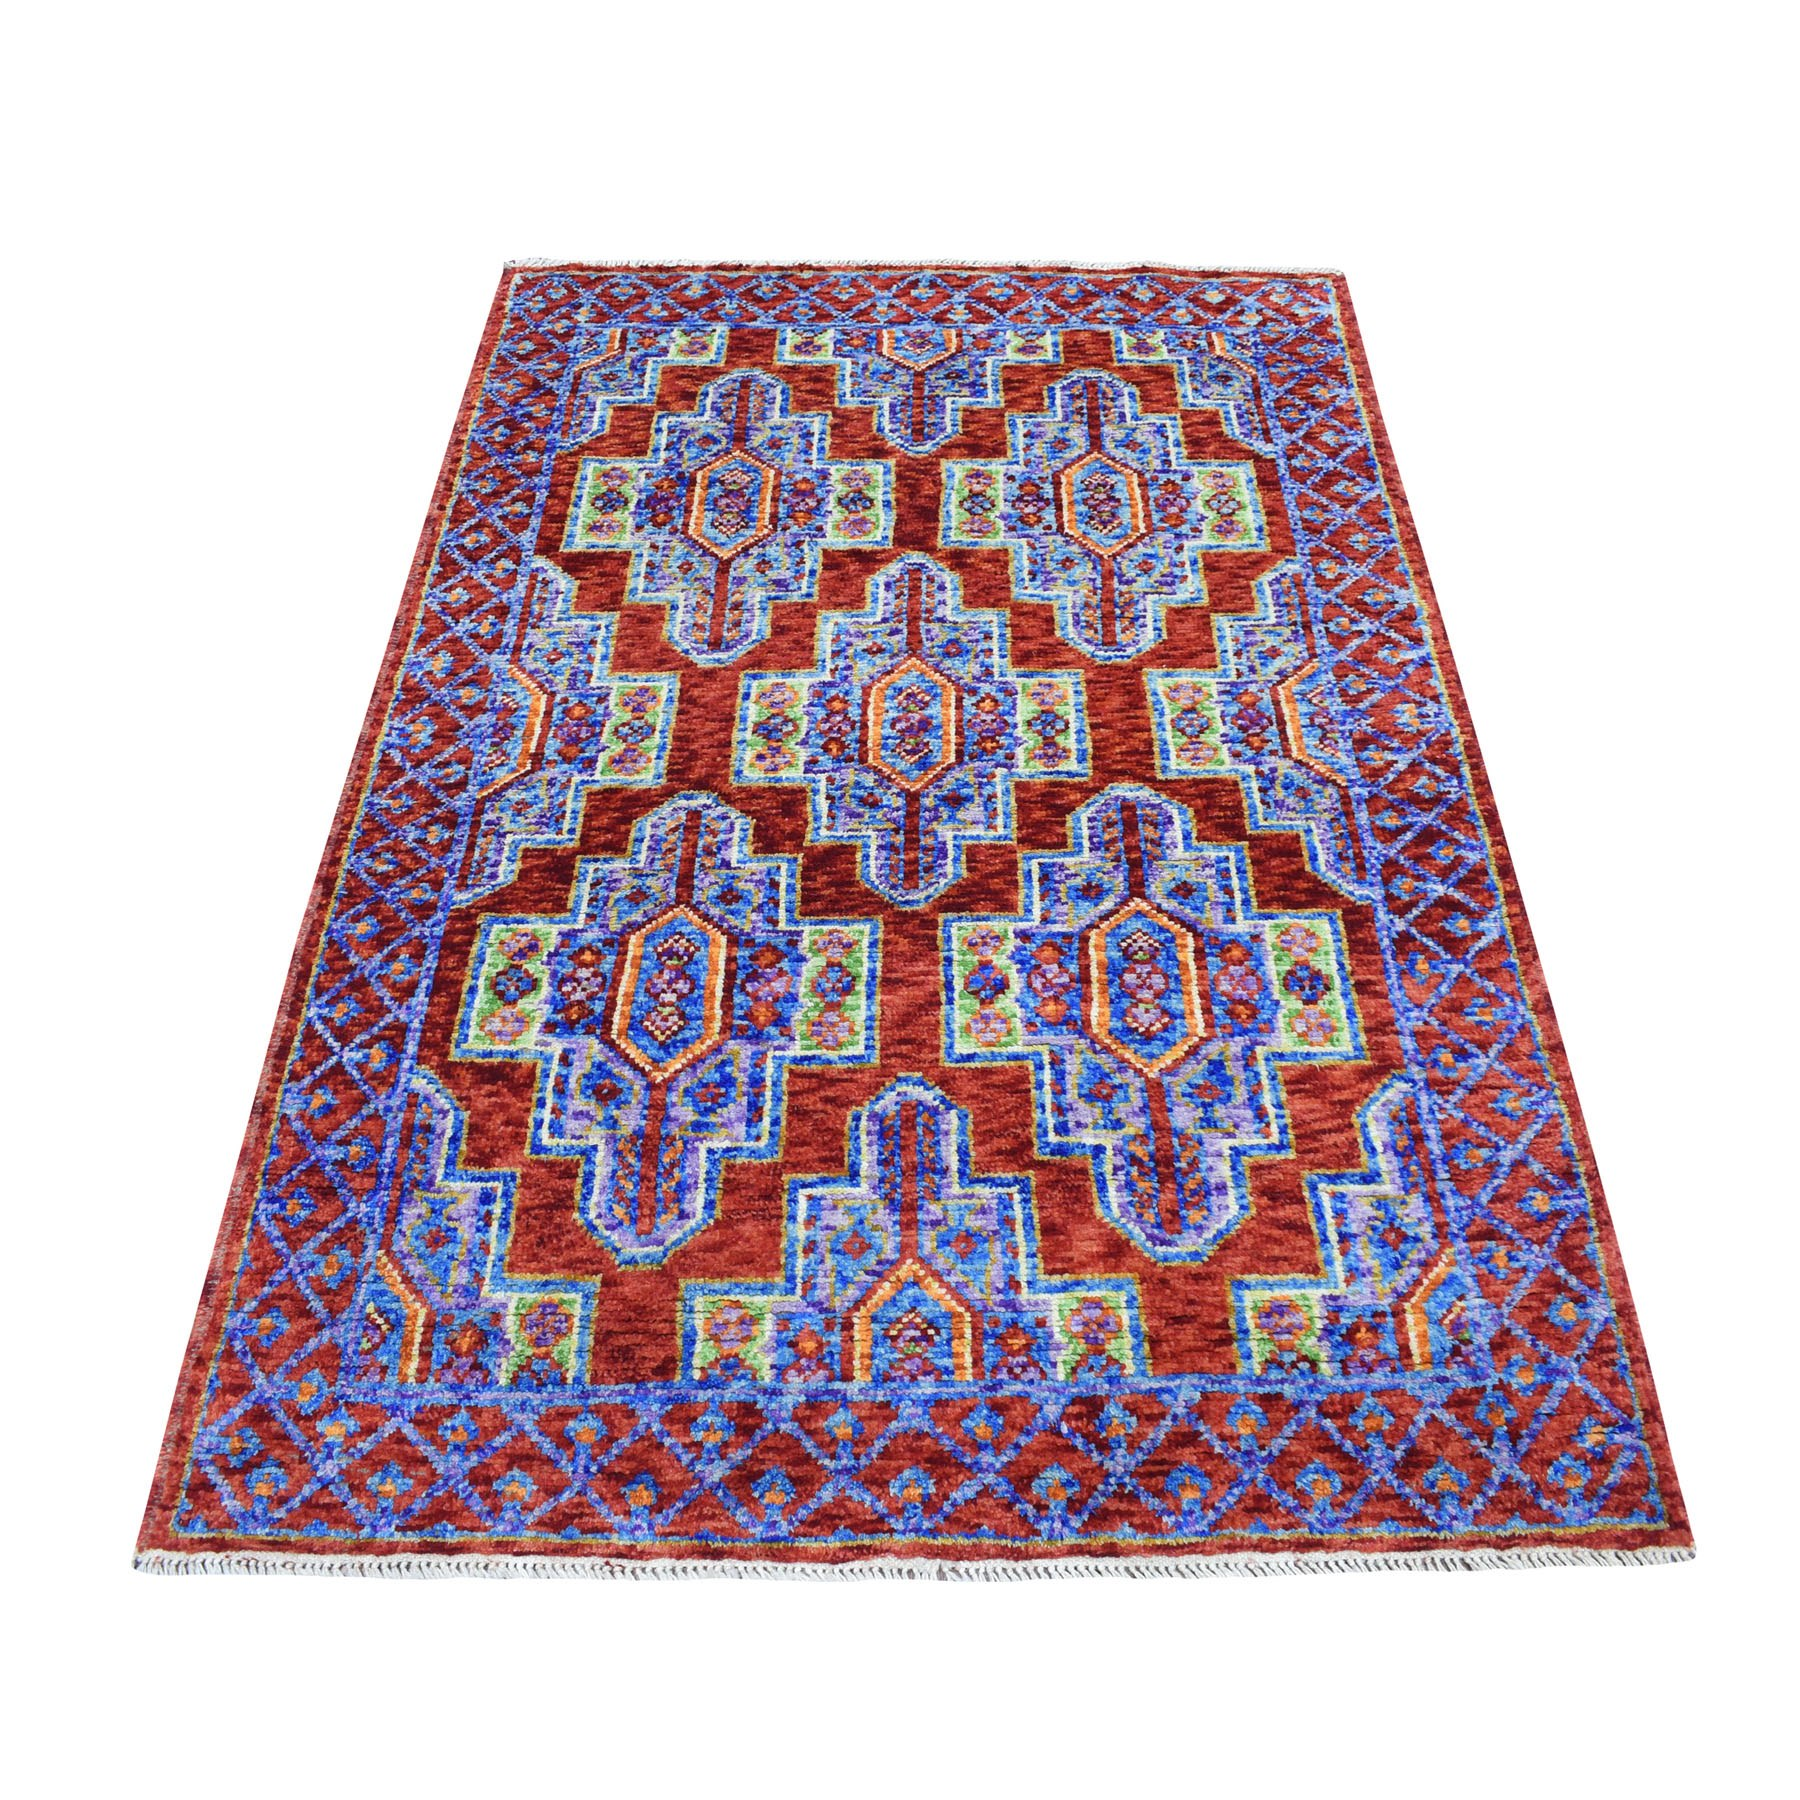 4'X6' Colorful Afghan Baluch Geometric Design Natural Dyes 100% Wool Hand Knotted Oriental Rug moaecad6